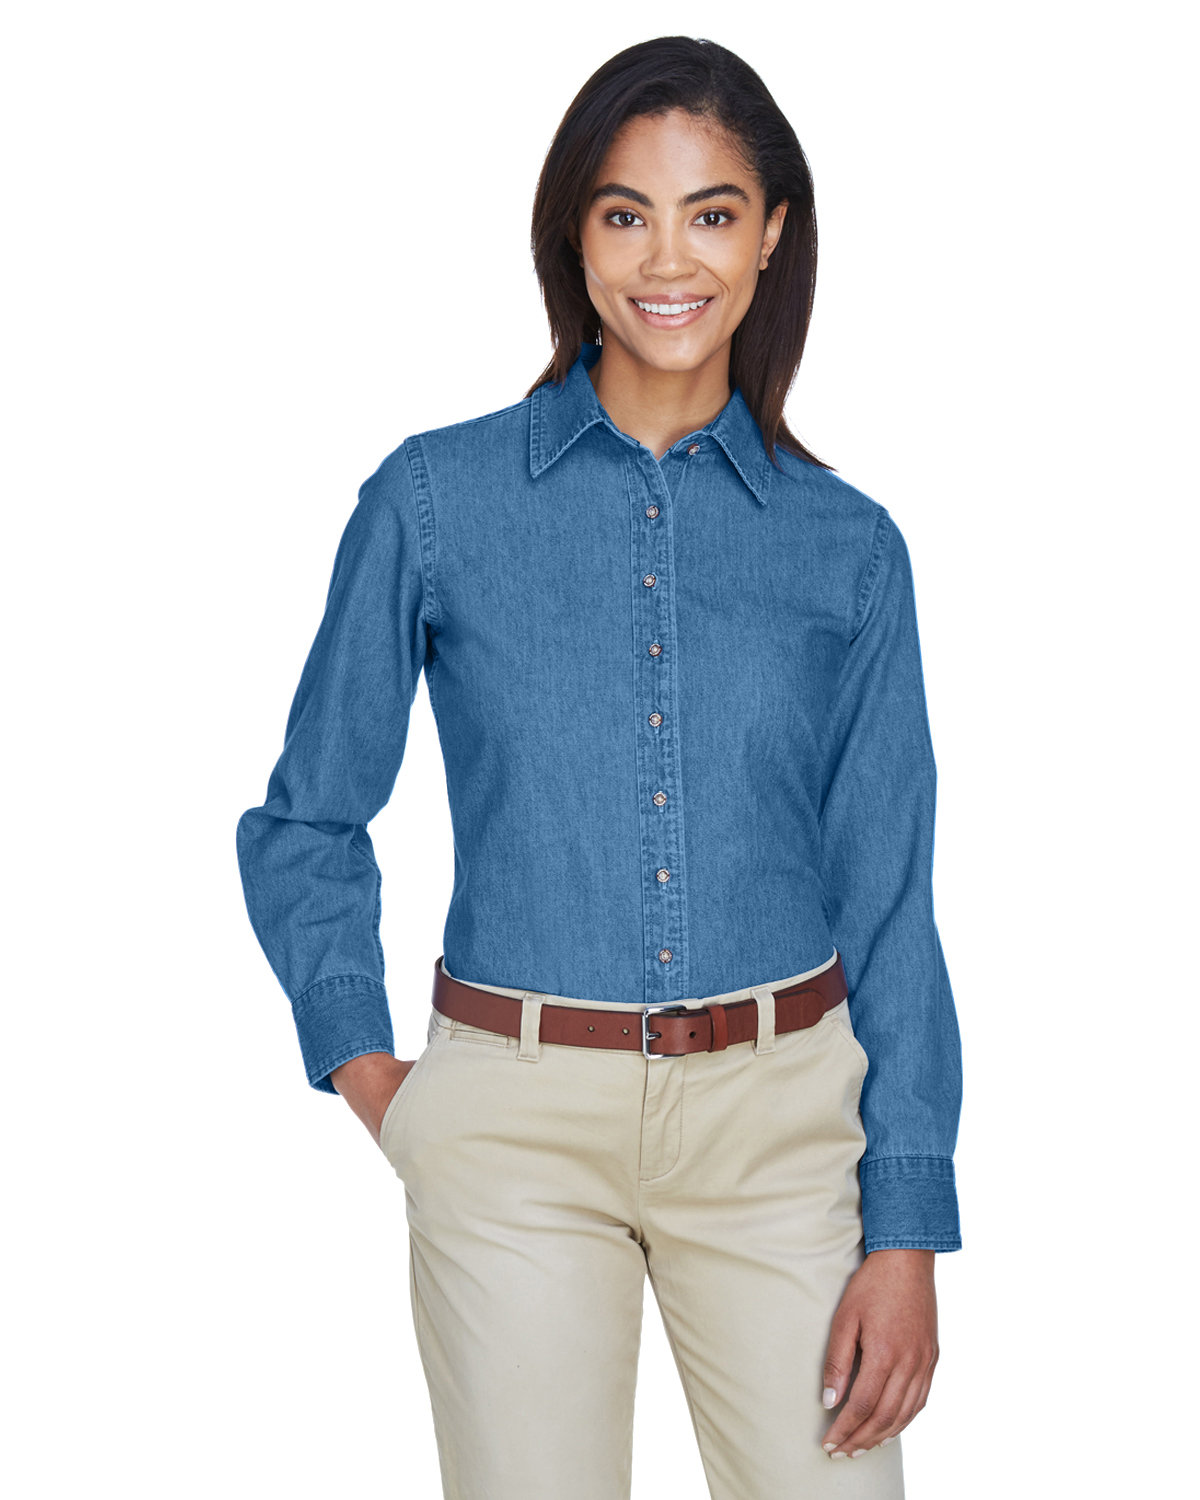 16186f0ef8a9 Long-Sleeve Denim Shirt. Hover to zoom